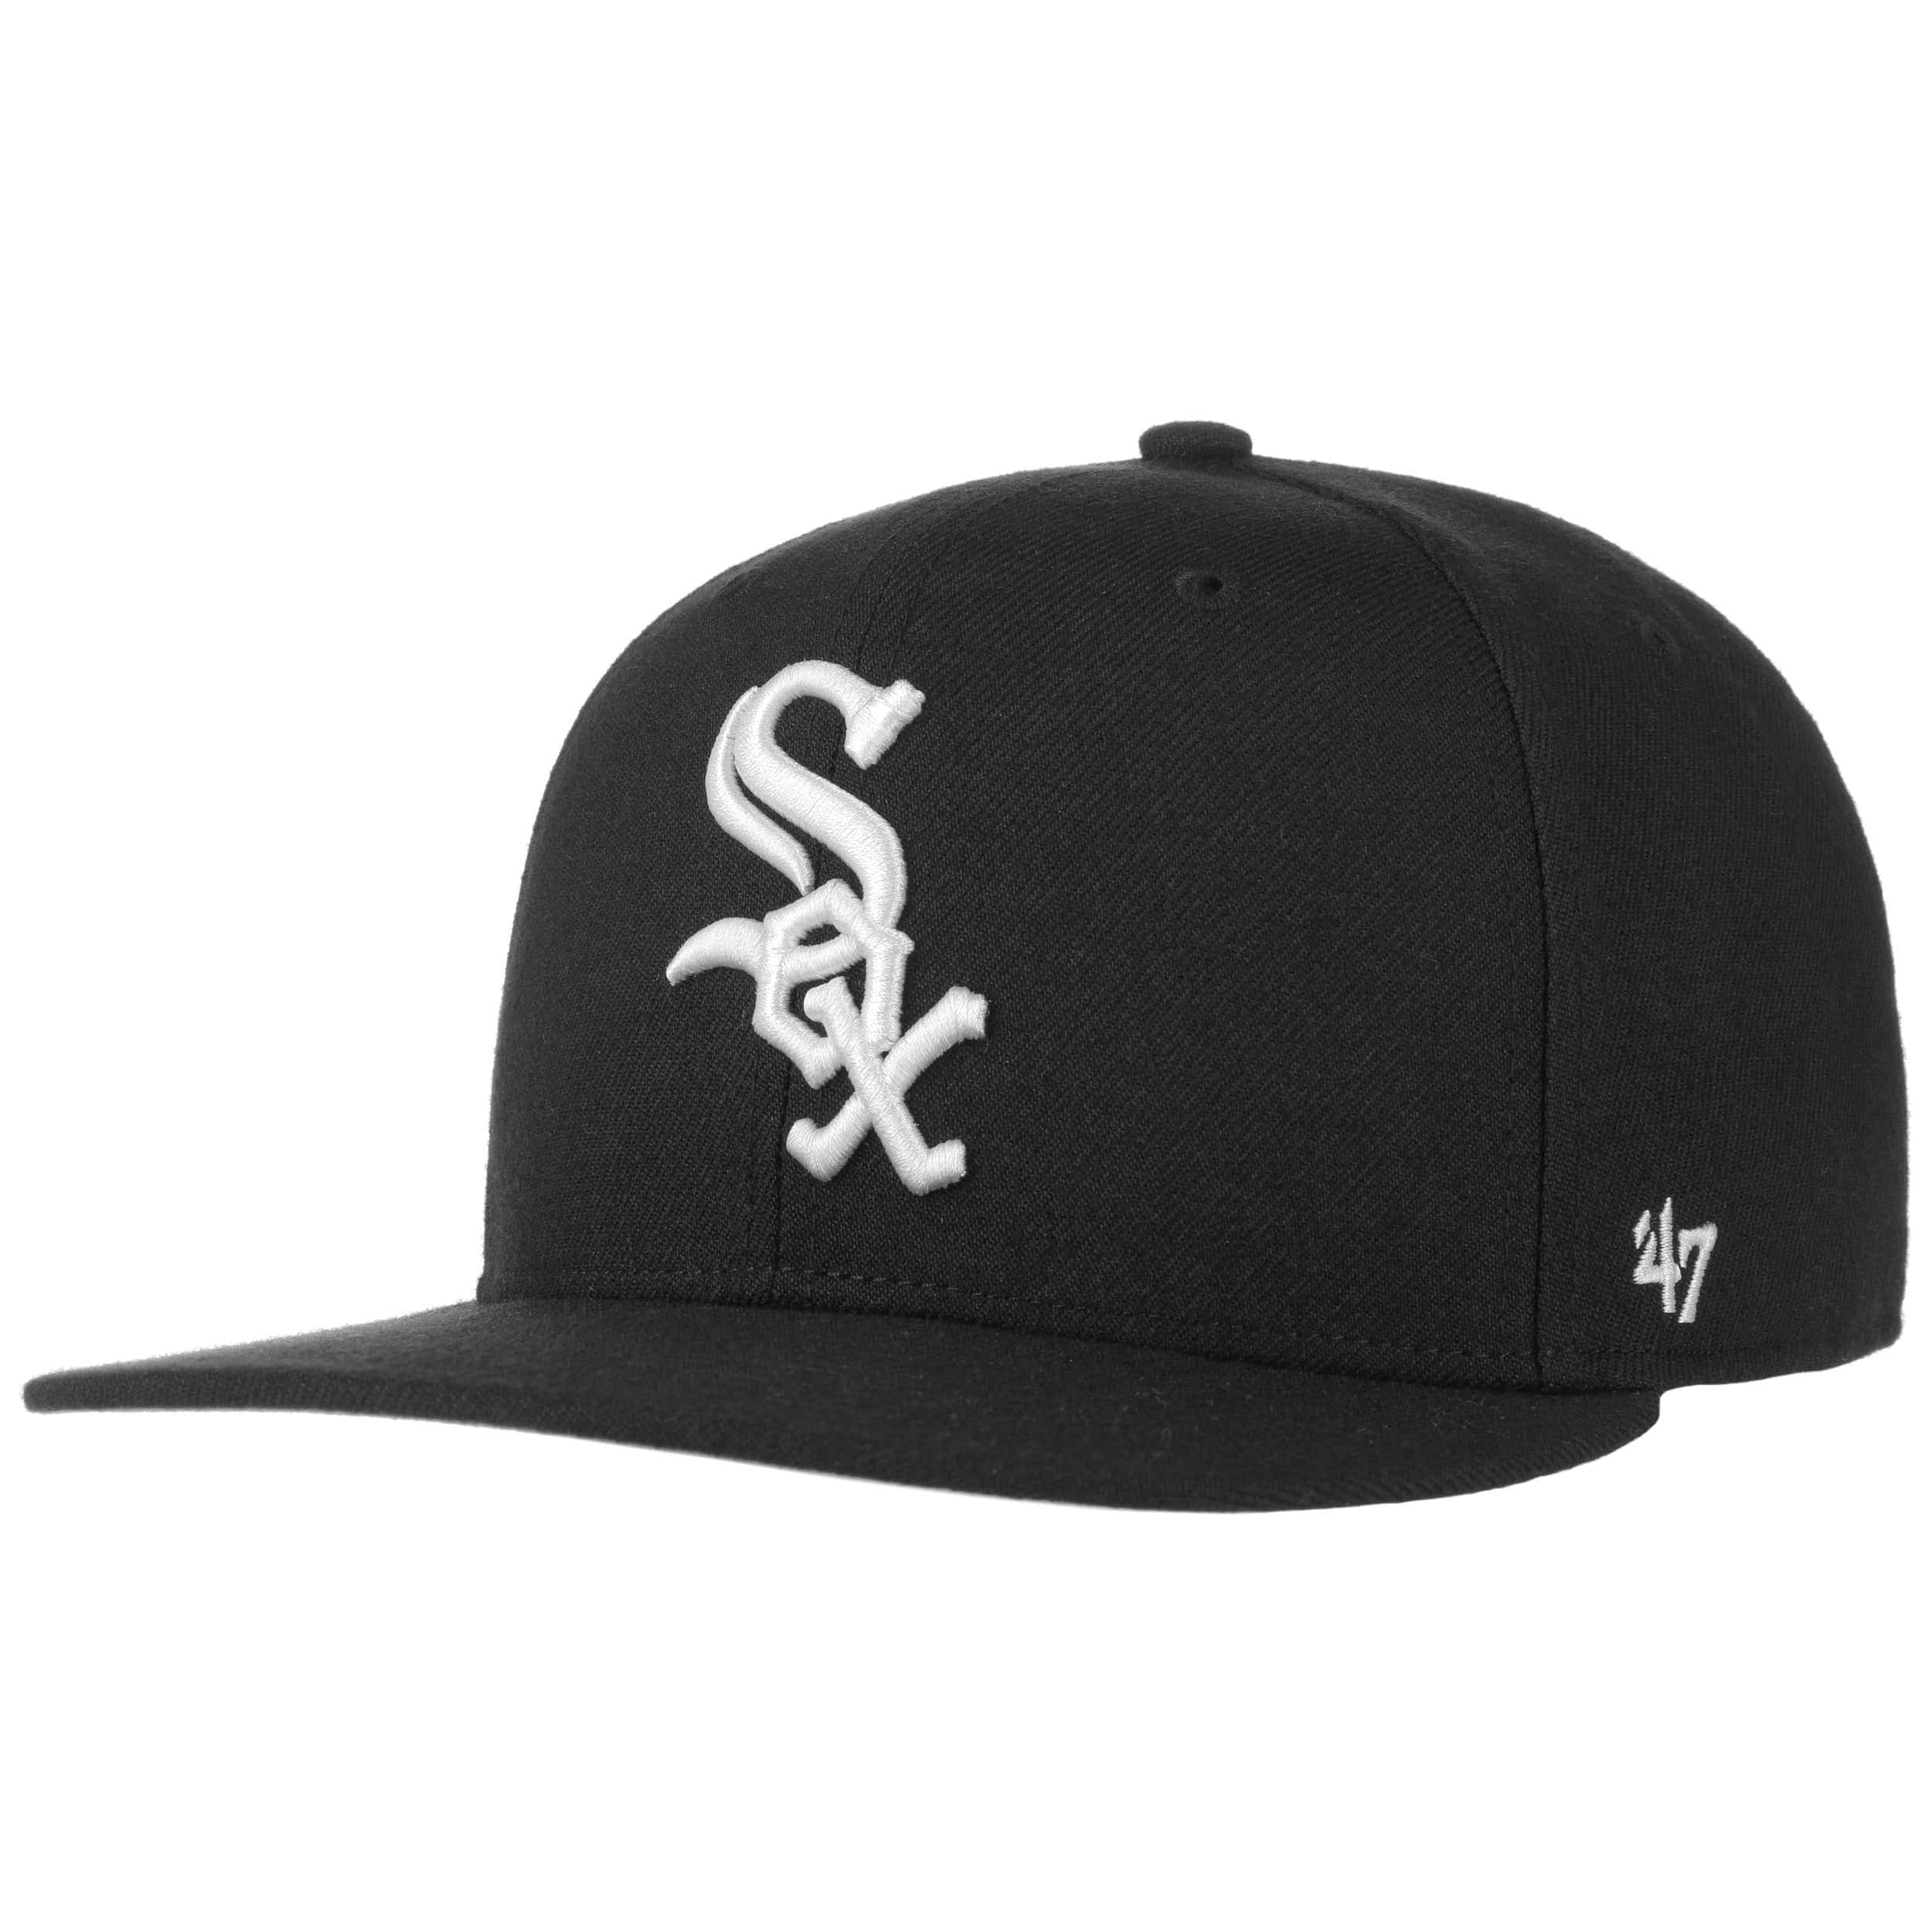 MLB Chicago White Sox Cap Basecap Baseballcap 47 Brand Captain navy No Shot